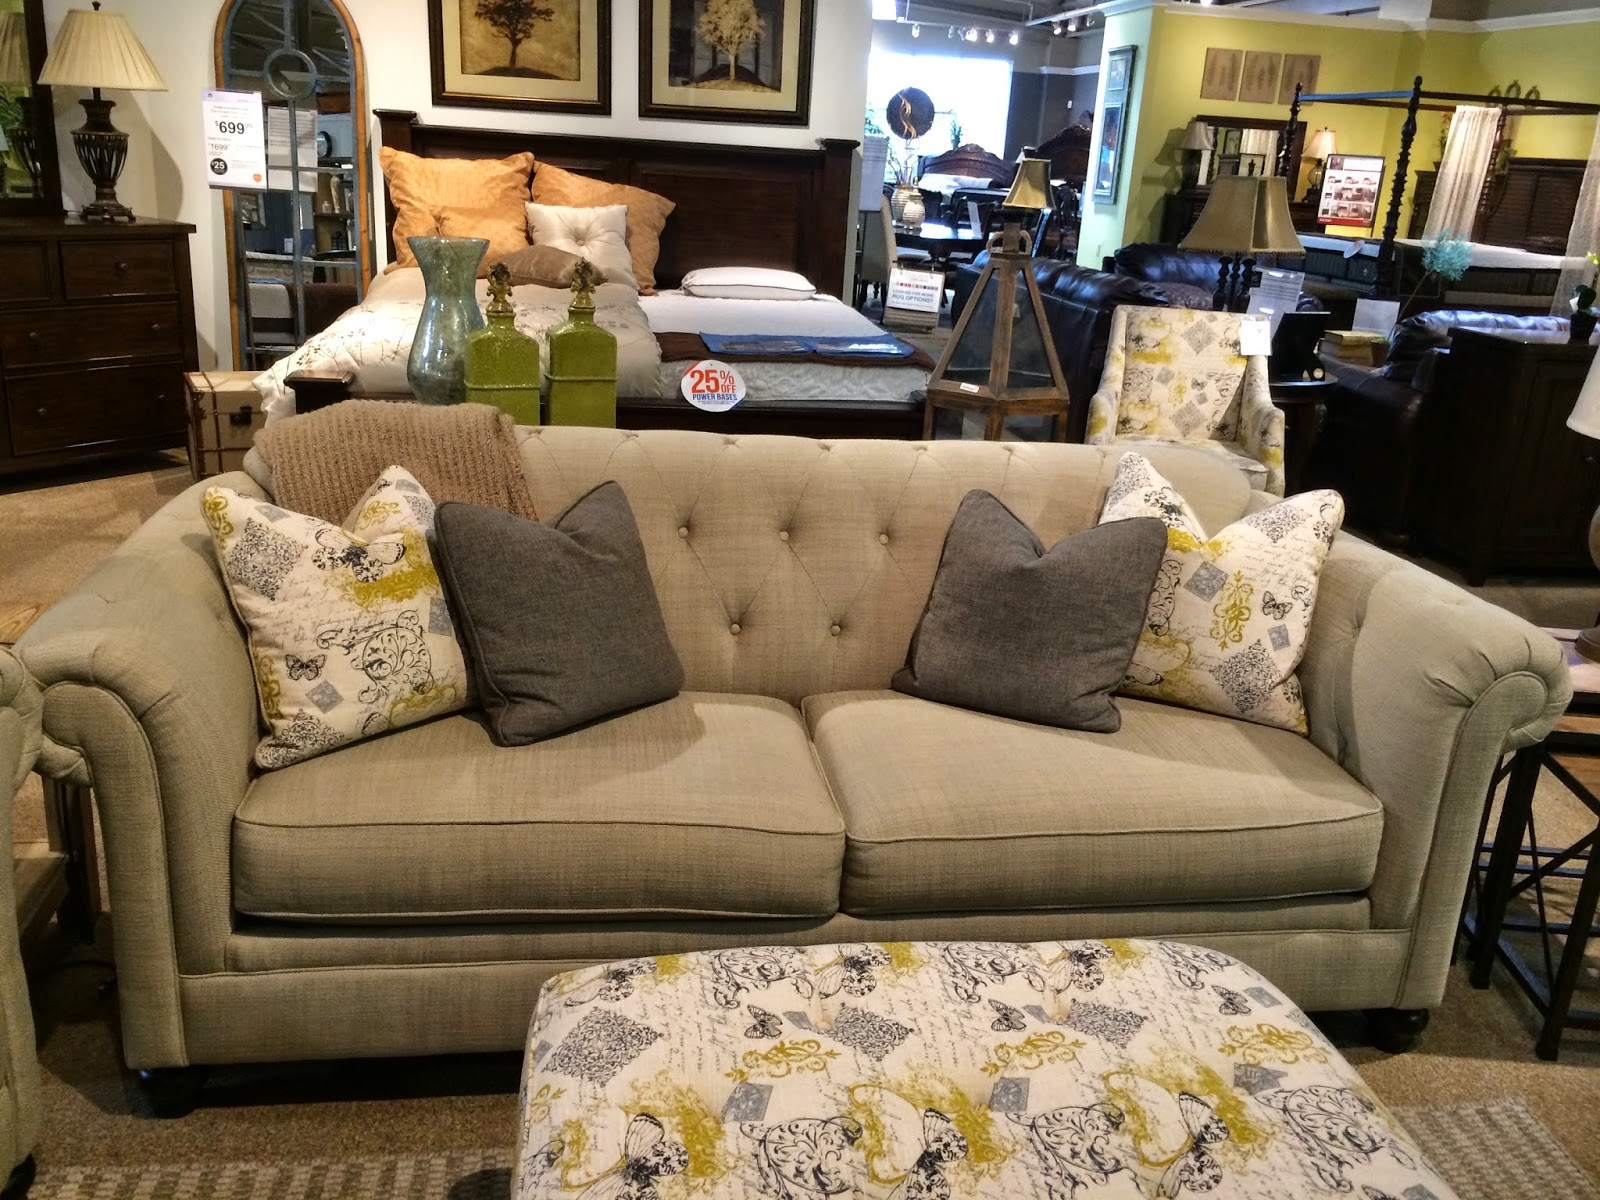 Ideal Option This World Market slipcovered sofa was the right price but seemed just a little small and looked college to me and not grown up living room